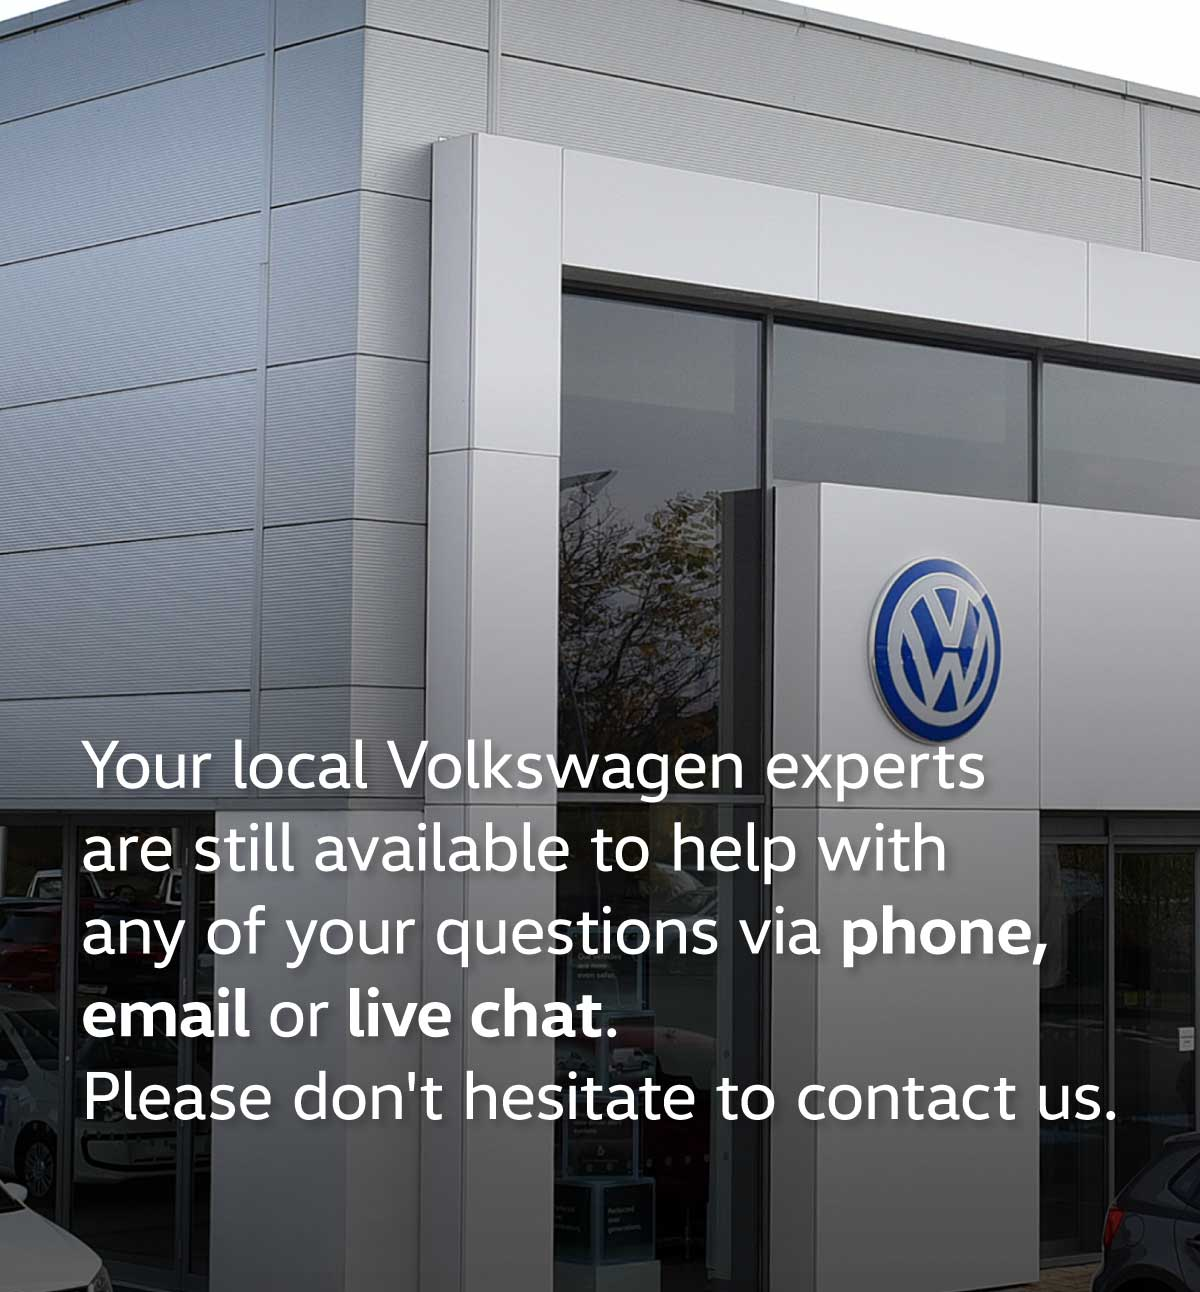 Volkswagen Temporarily Closed Message